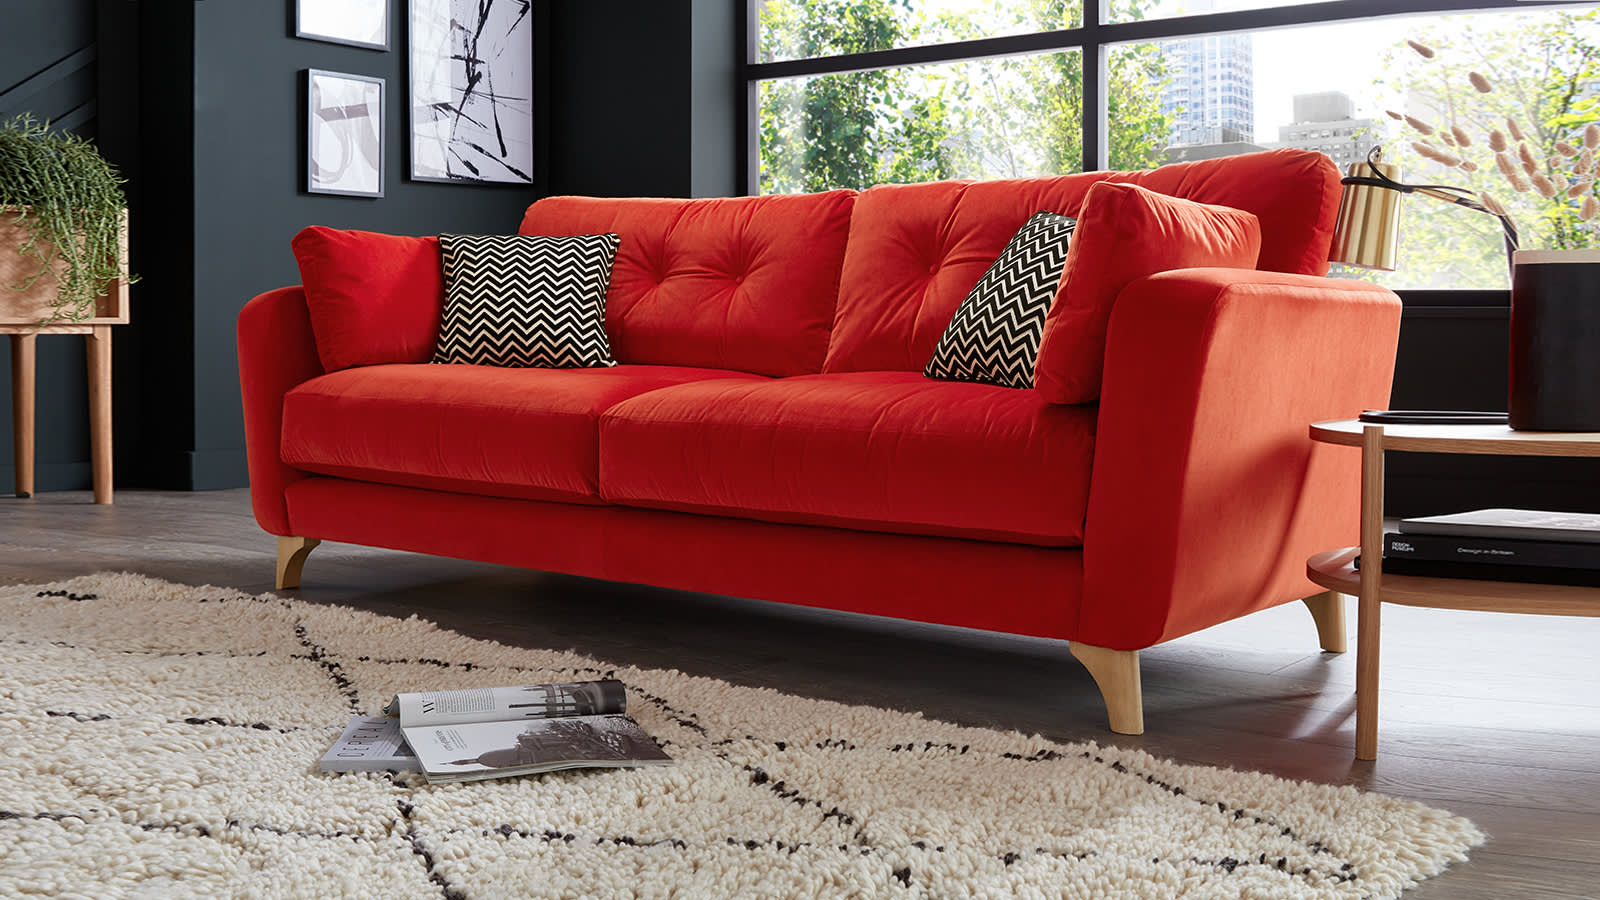 Sofology Leather Fabric Sofas Corners Sofa Beds Chairs